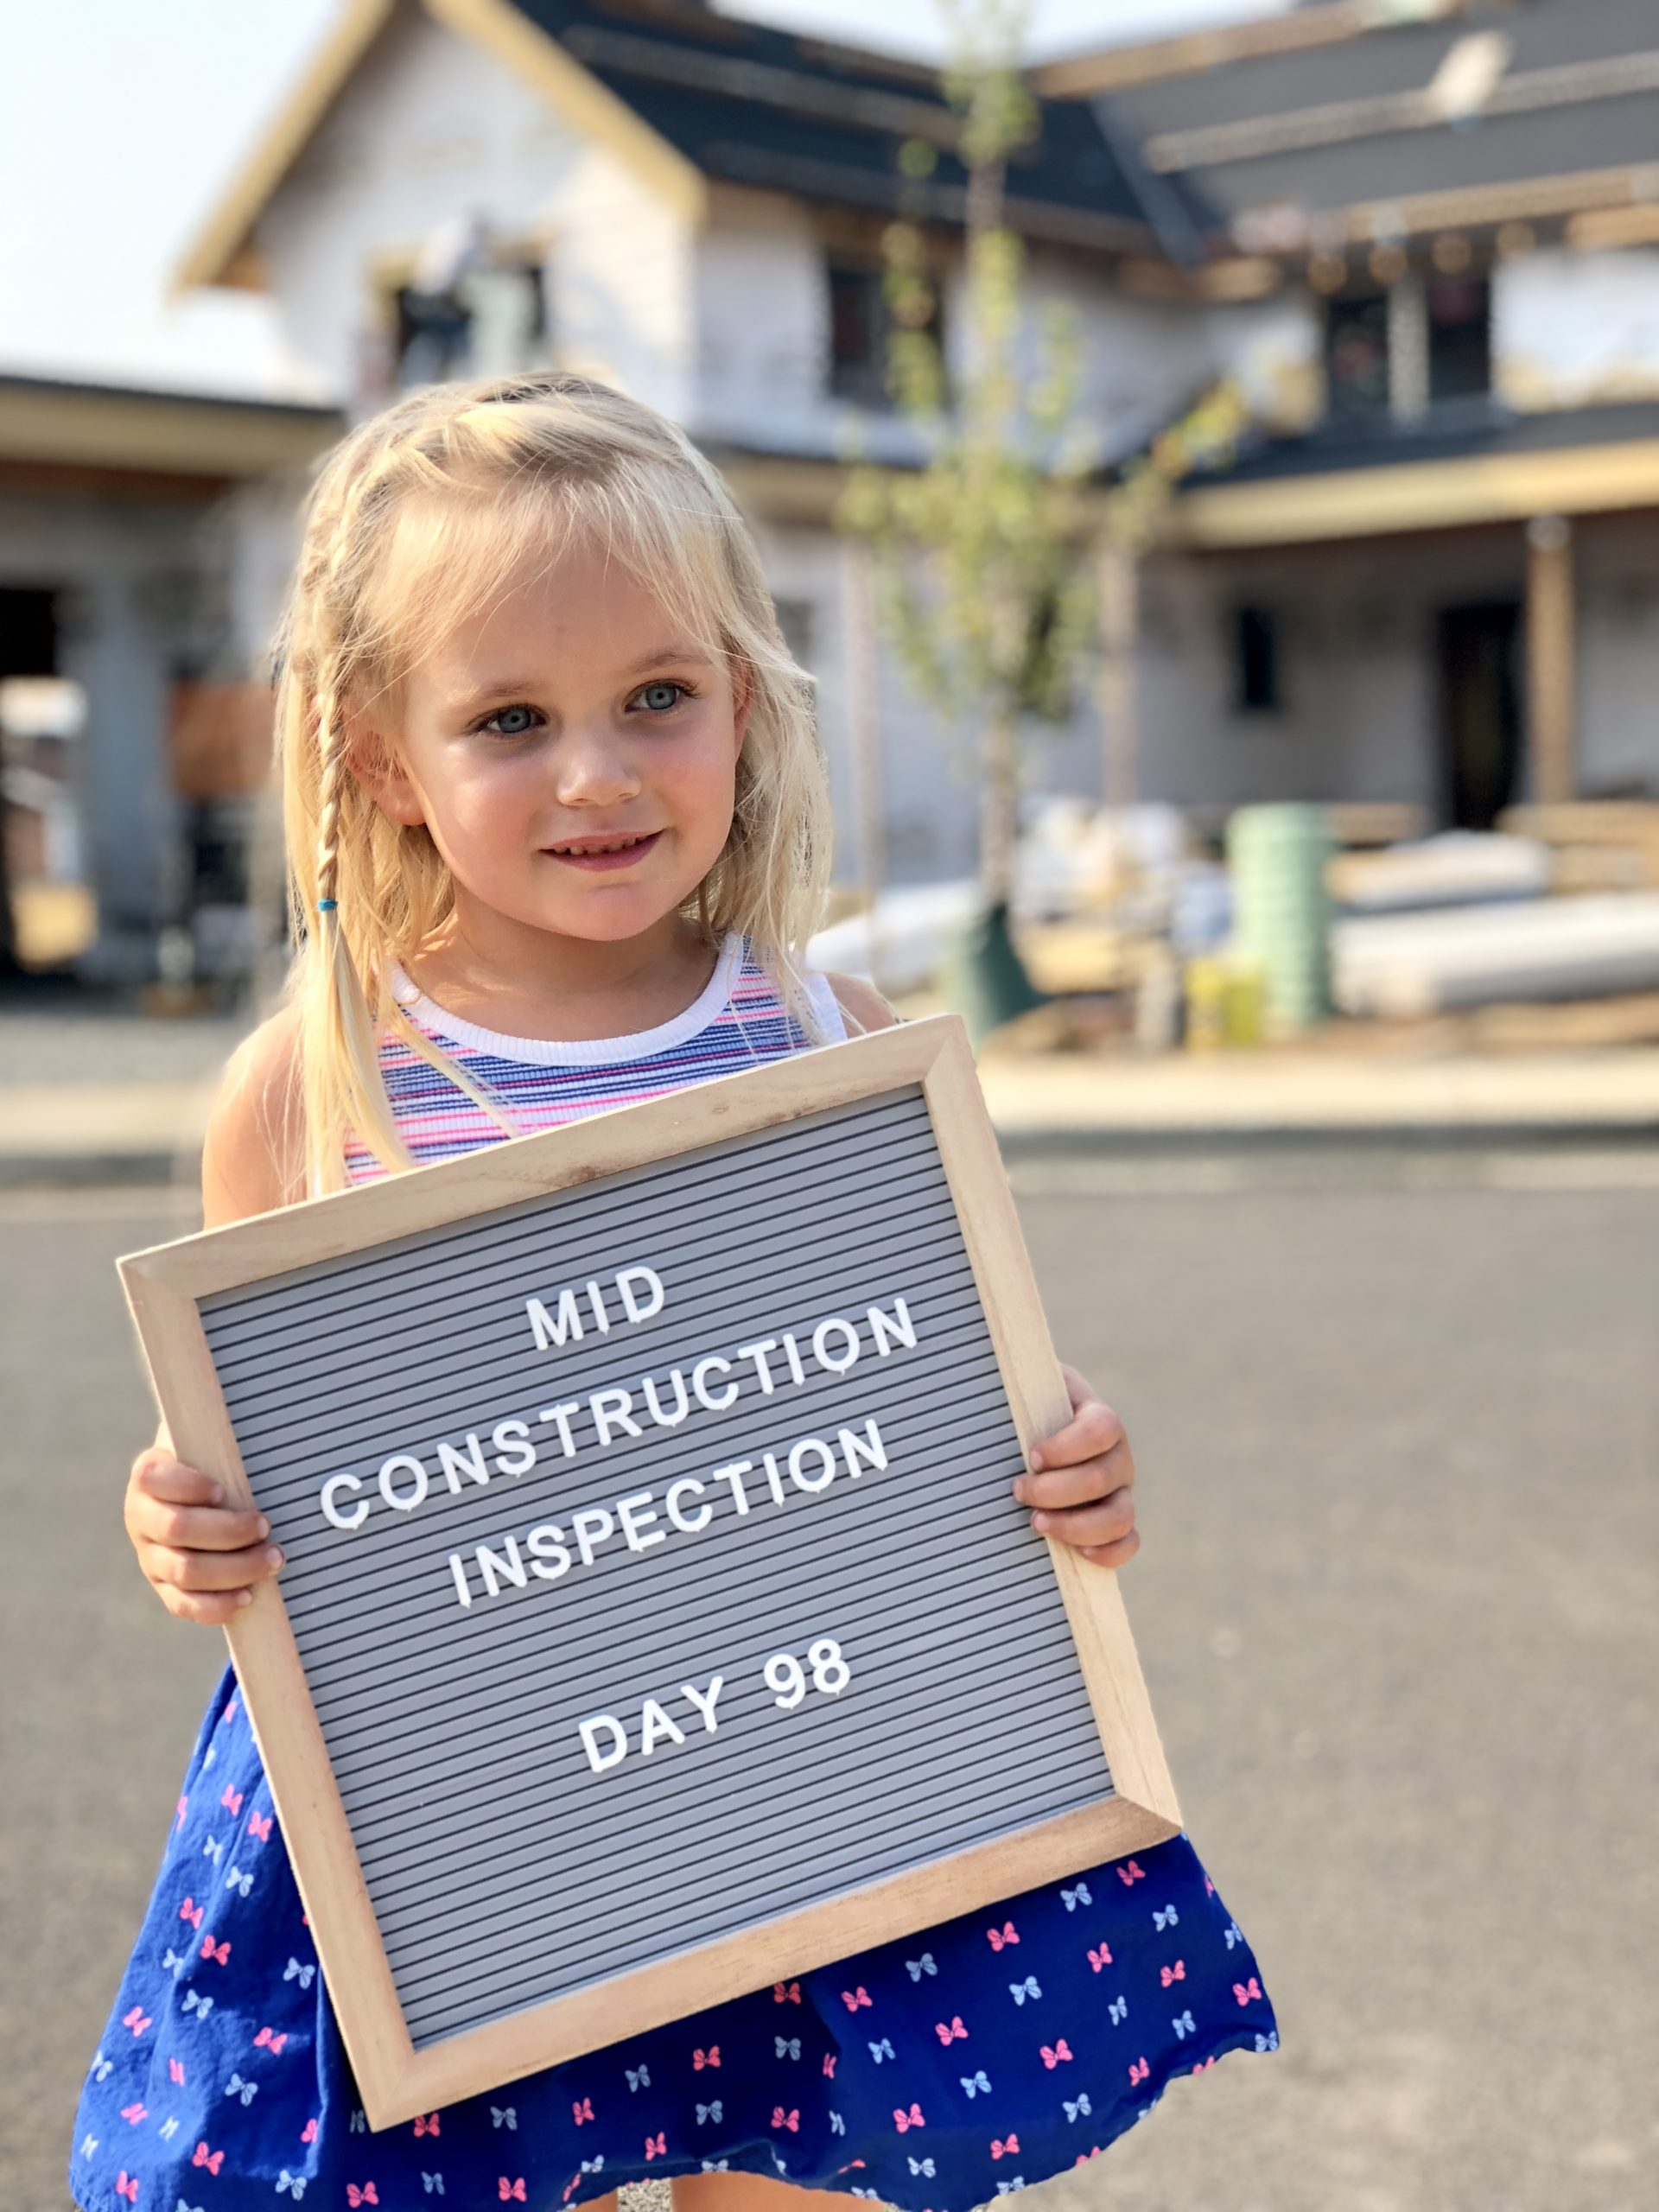 mid-construction inspection